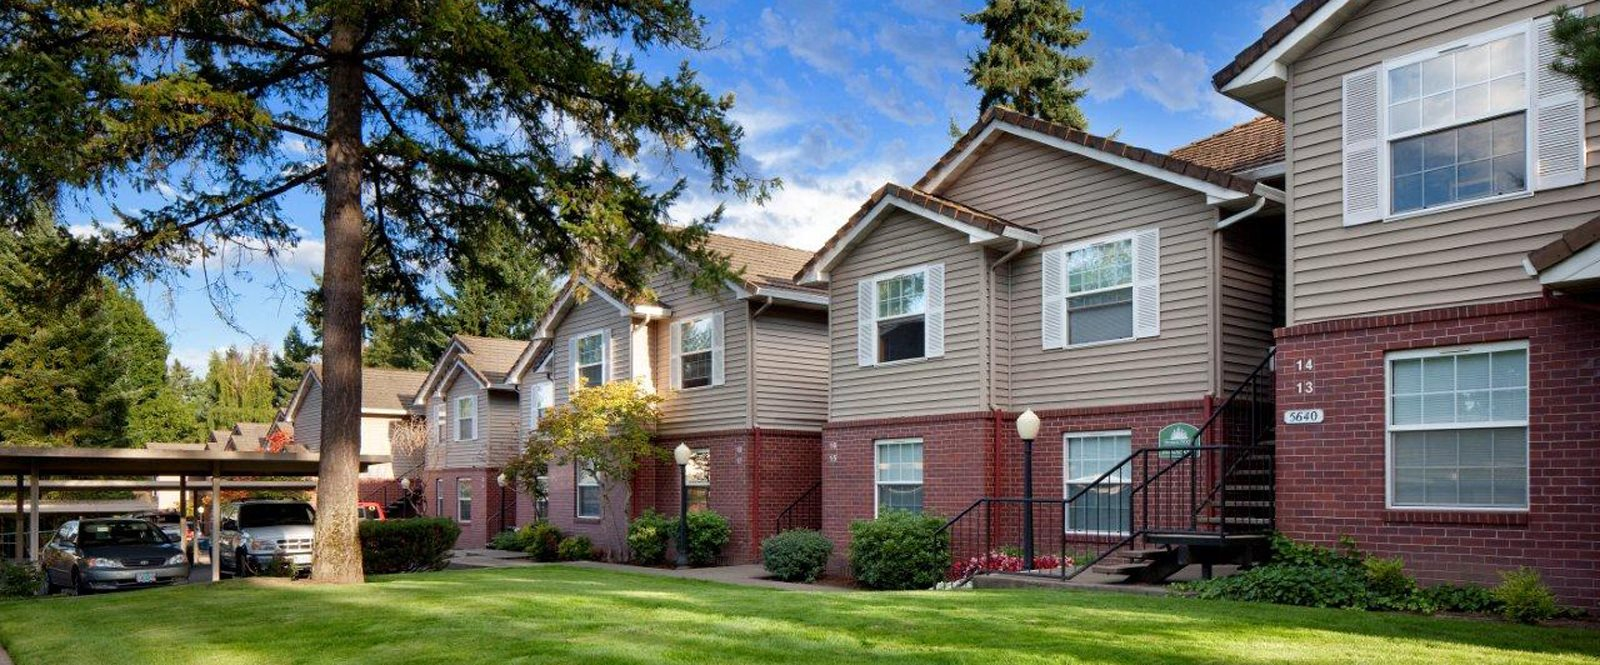 Beaverton homepagegallery 1